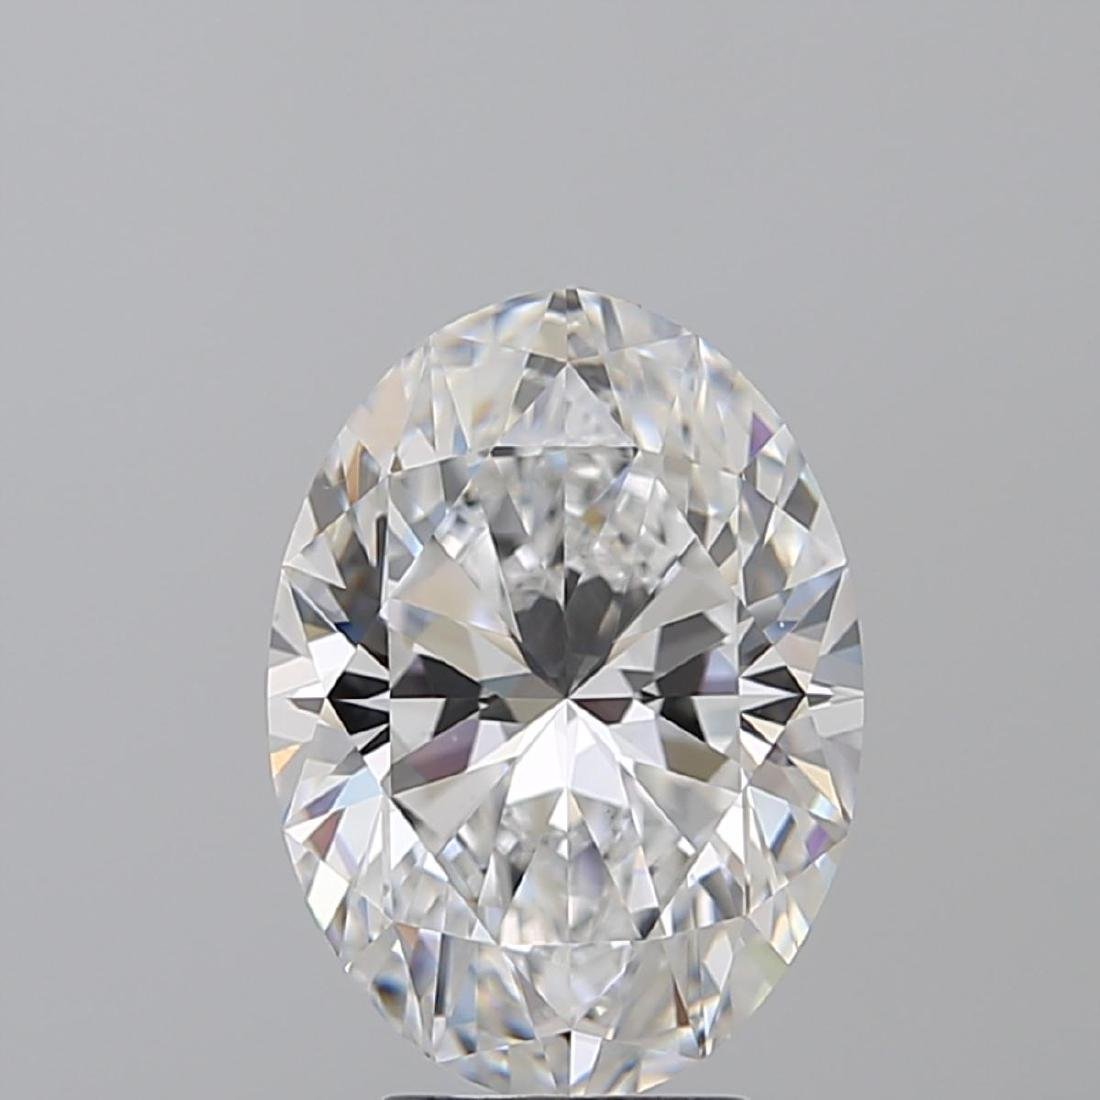 4.02 ct, Color D/VS2 , Oval cut Diamond - 2